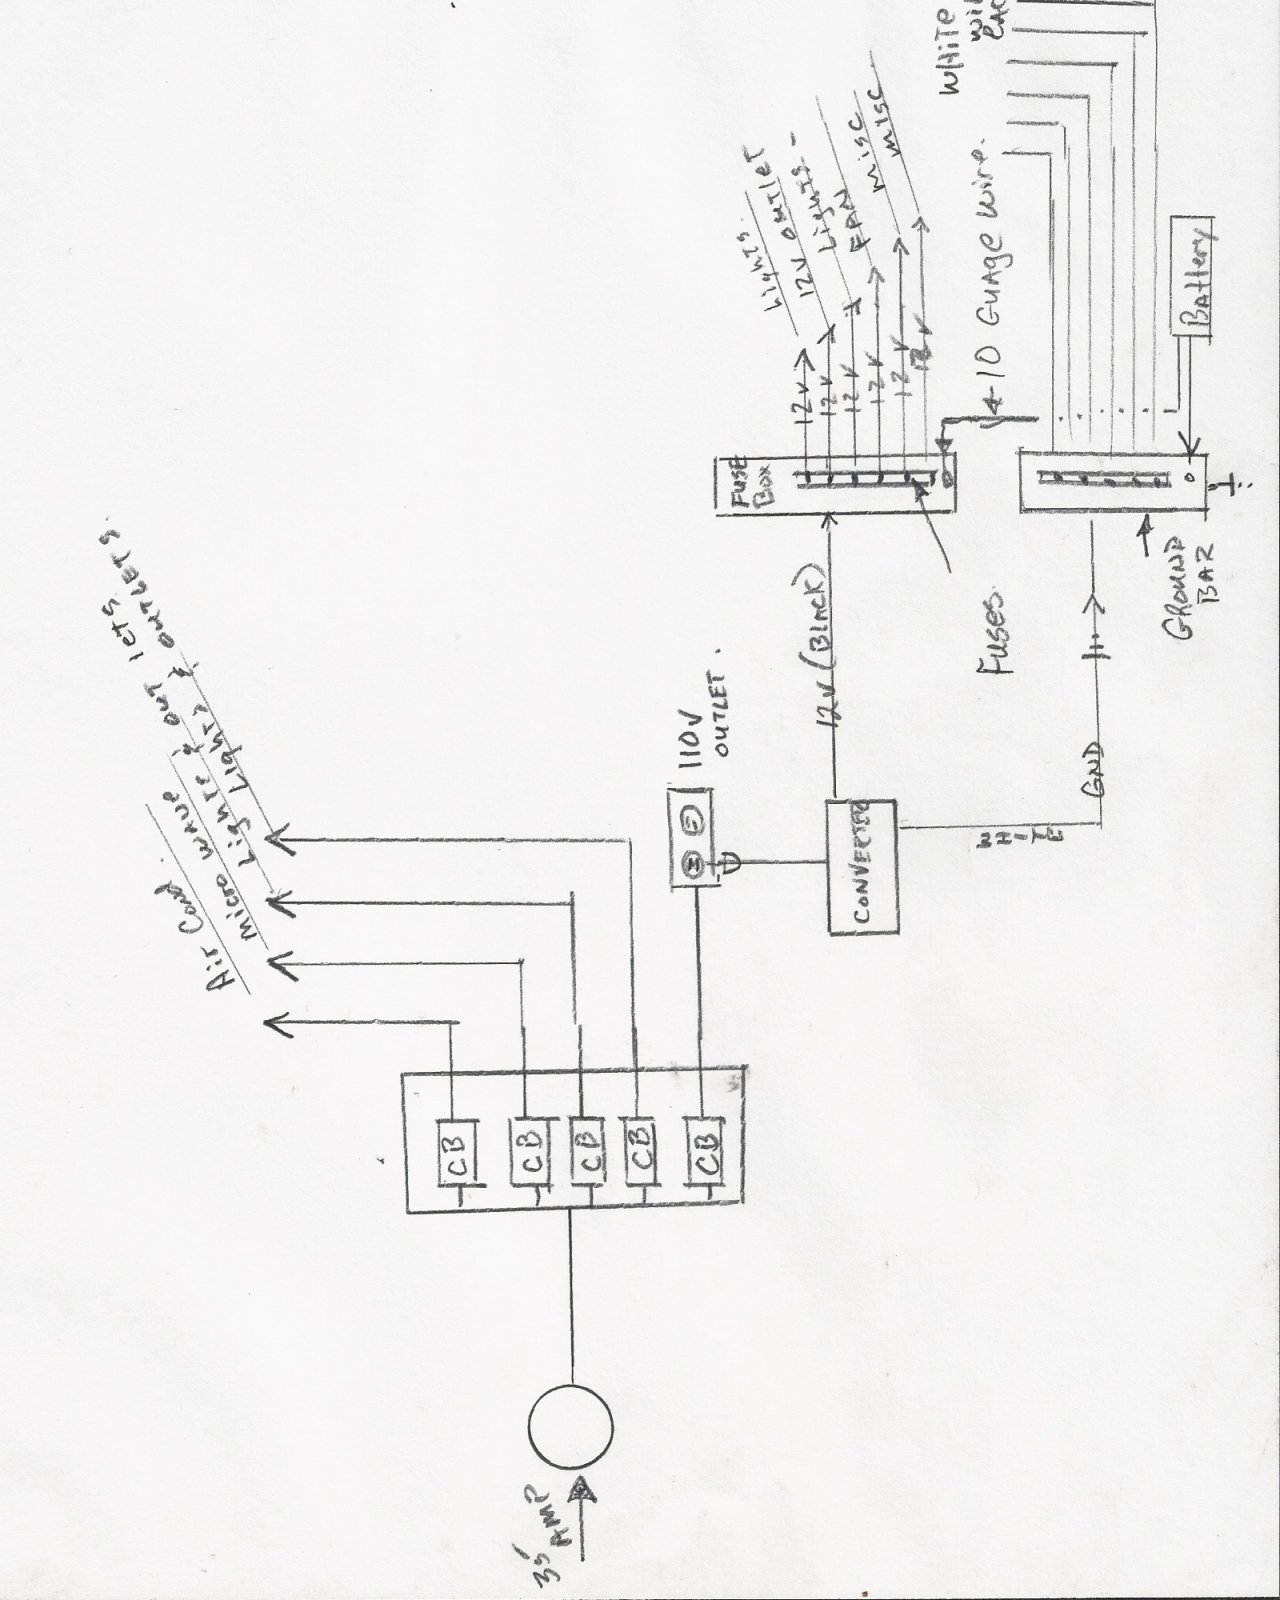 Click image for larger version  Name:Airstream electrical diagram.jpg Views:97 Size:191.6 KB ID:234125